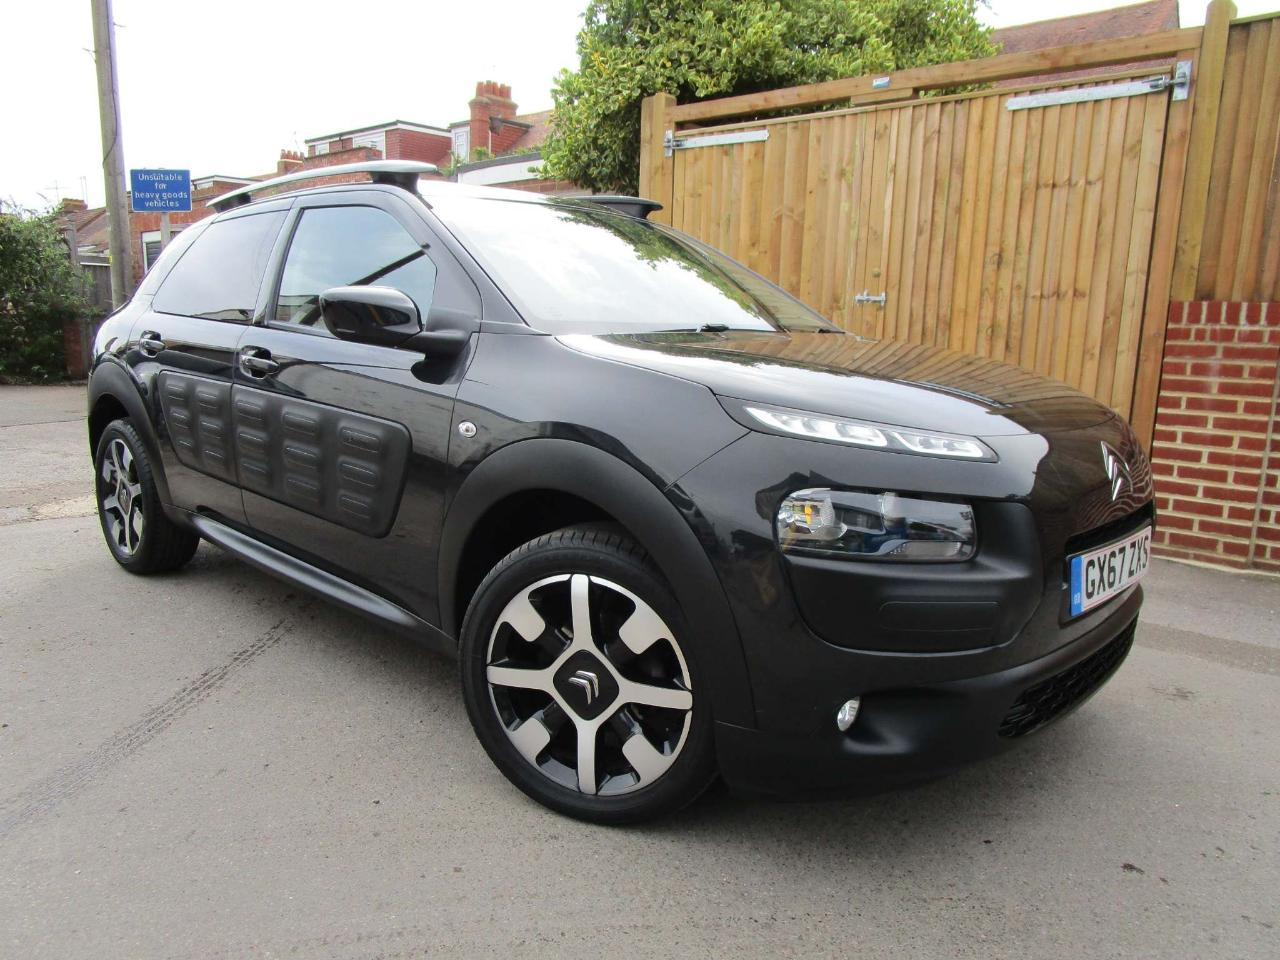 Citroën C4 Cactus 1.6 BlueHDi Flair 5dr